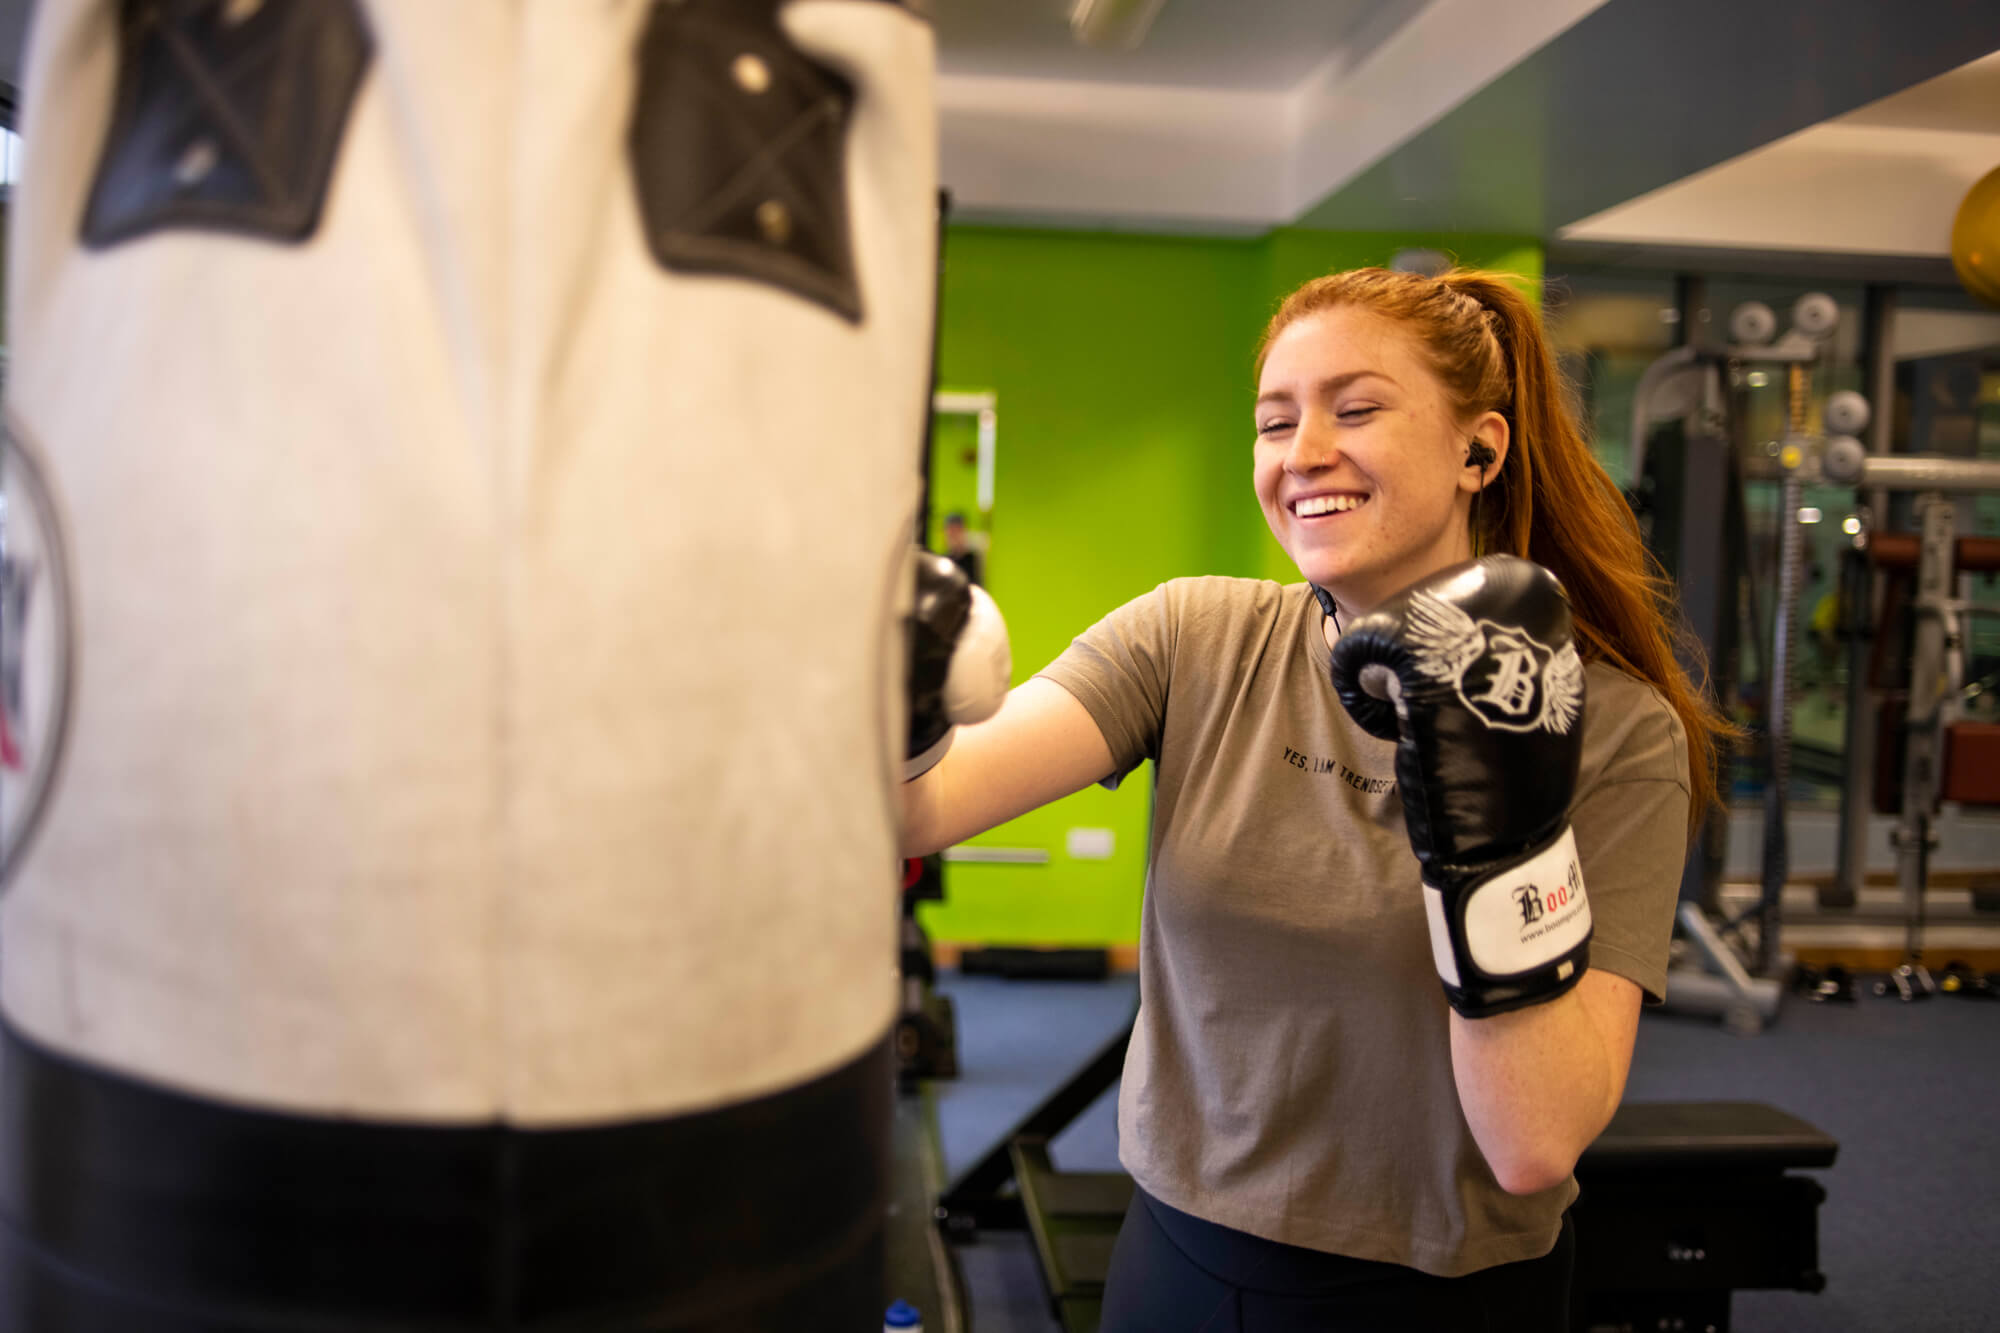 A University of Derby student with long red hair tied in a ponytail, wearing a khaki green tshirt and boxing gloves, smiles as she punches a boxing bag